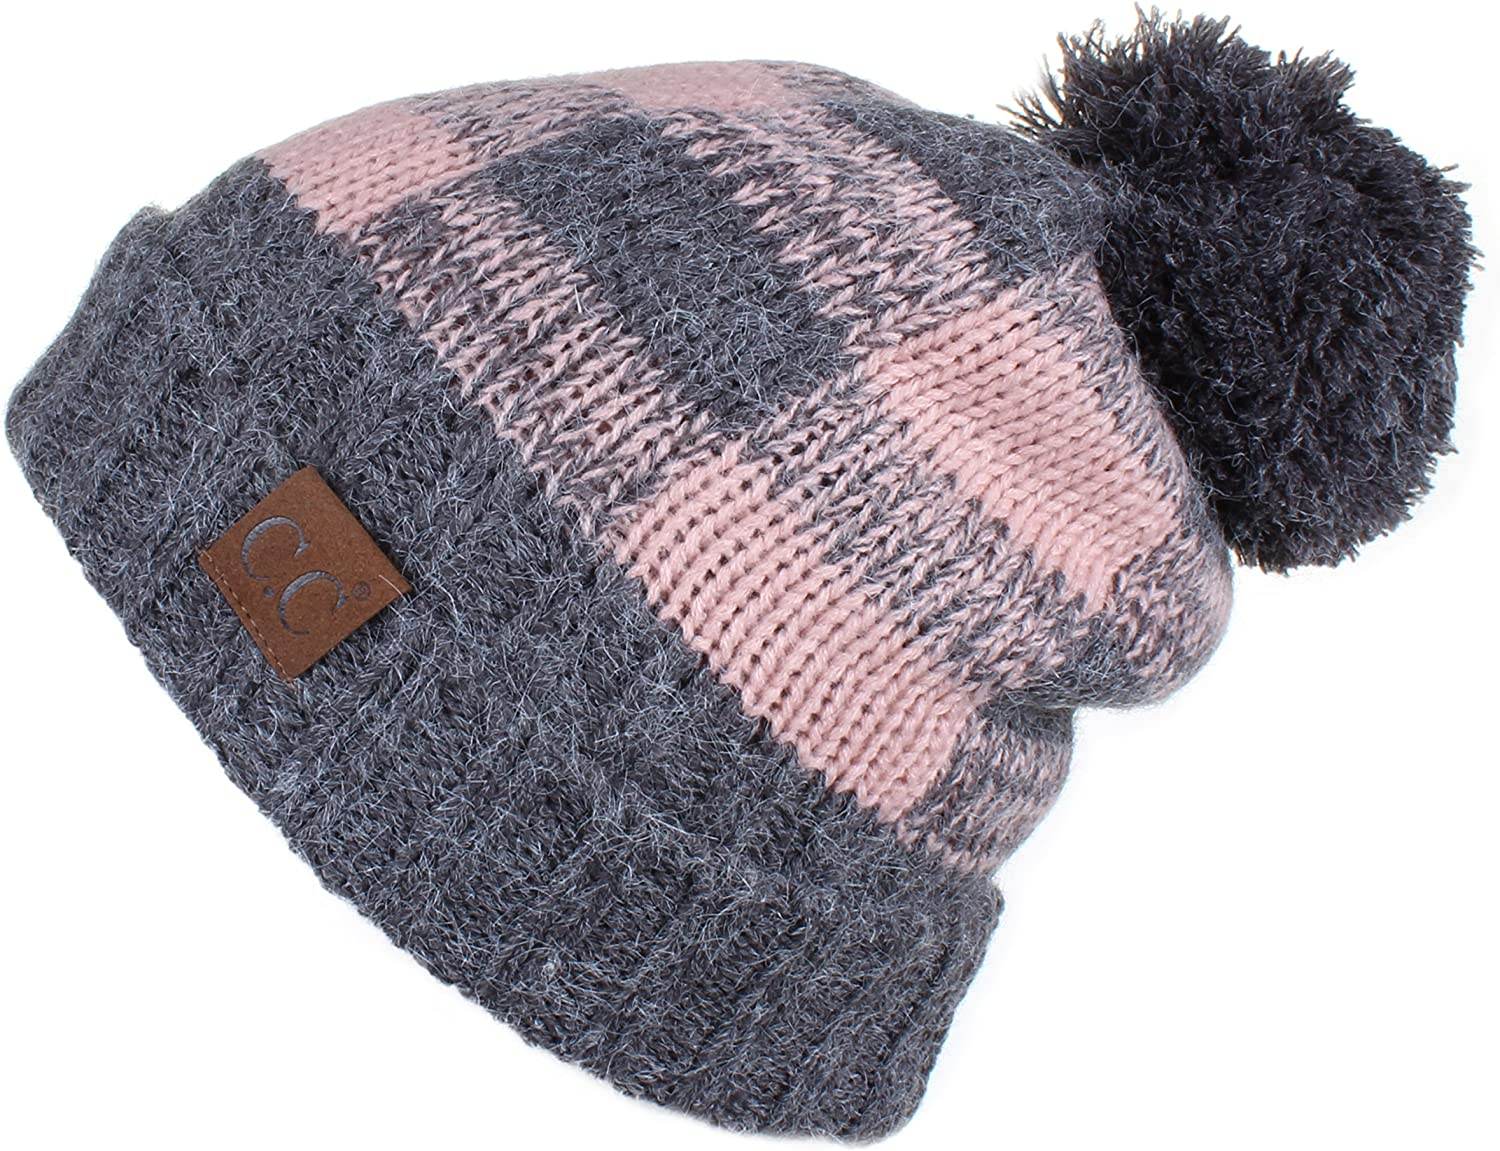 C.C Hatsandscarf Exclusives Buffalo Check San Francisco Mall Fuzzy Pattern Kn Max 50% OFF Lined